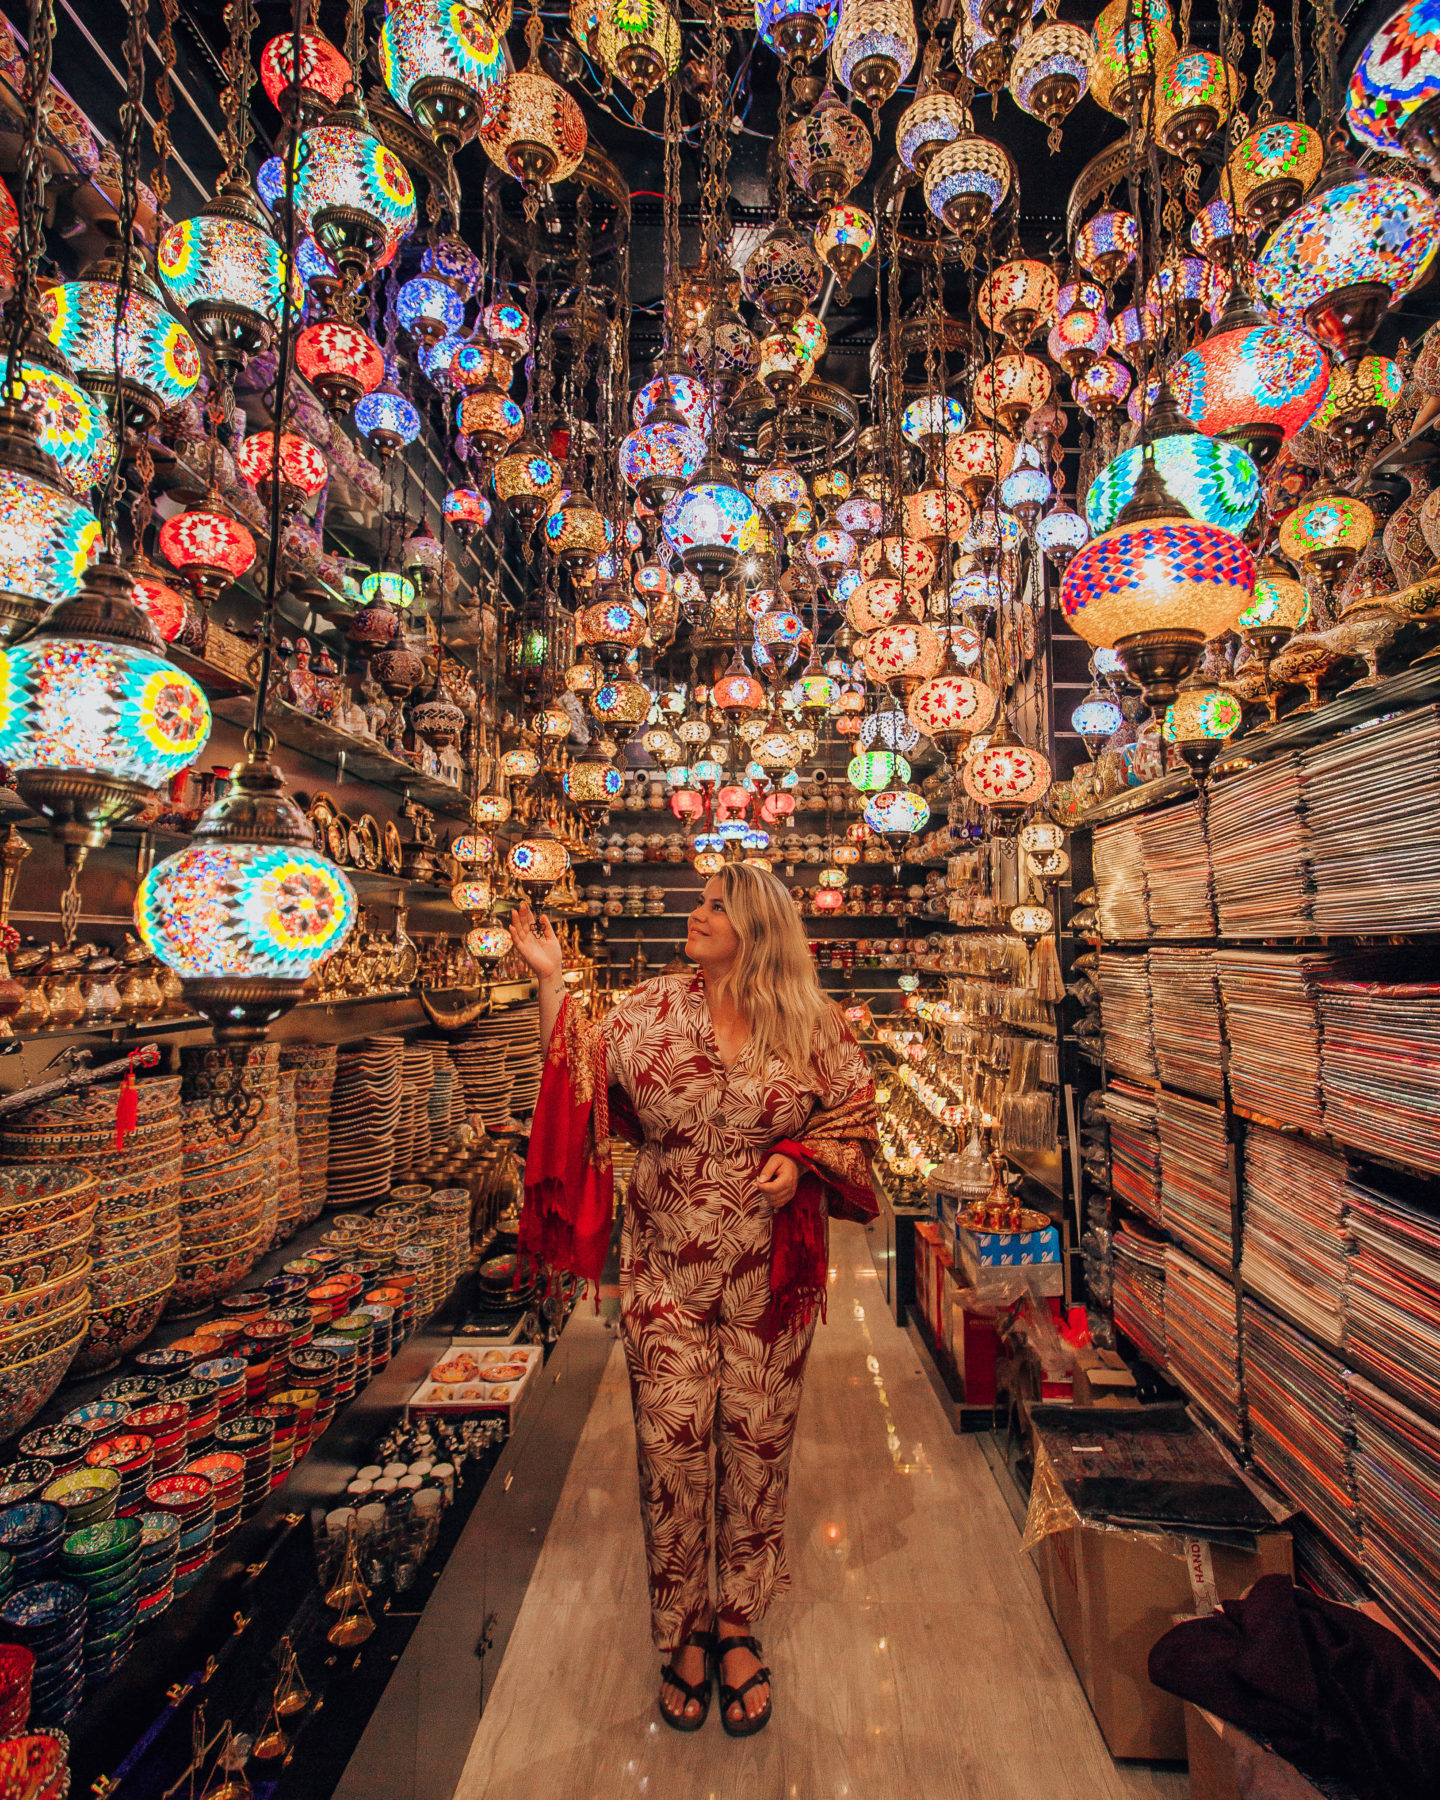 One of the lamp and pottery shops at the Spice Souk in Dubai